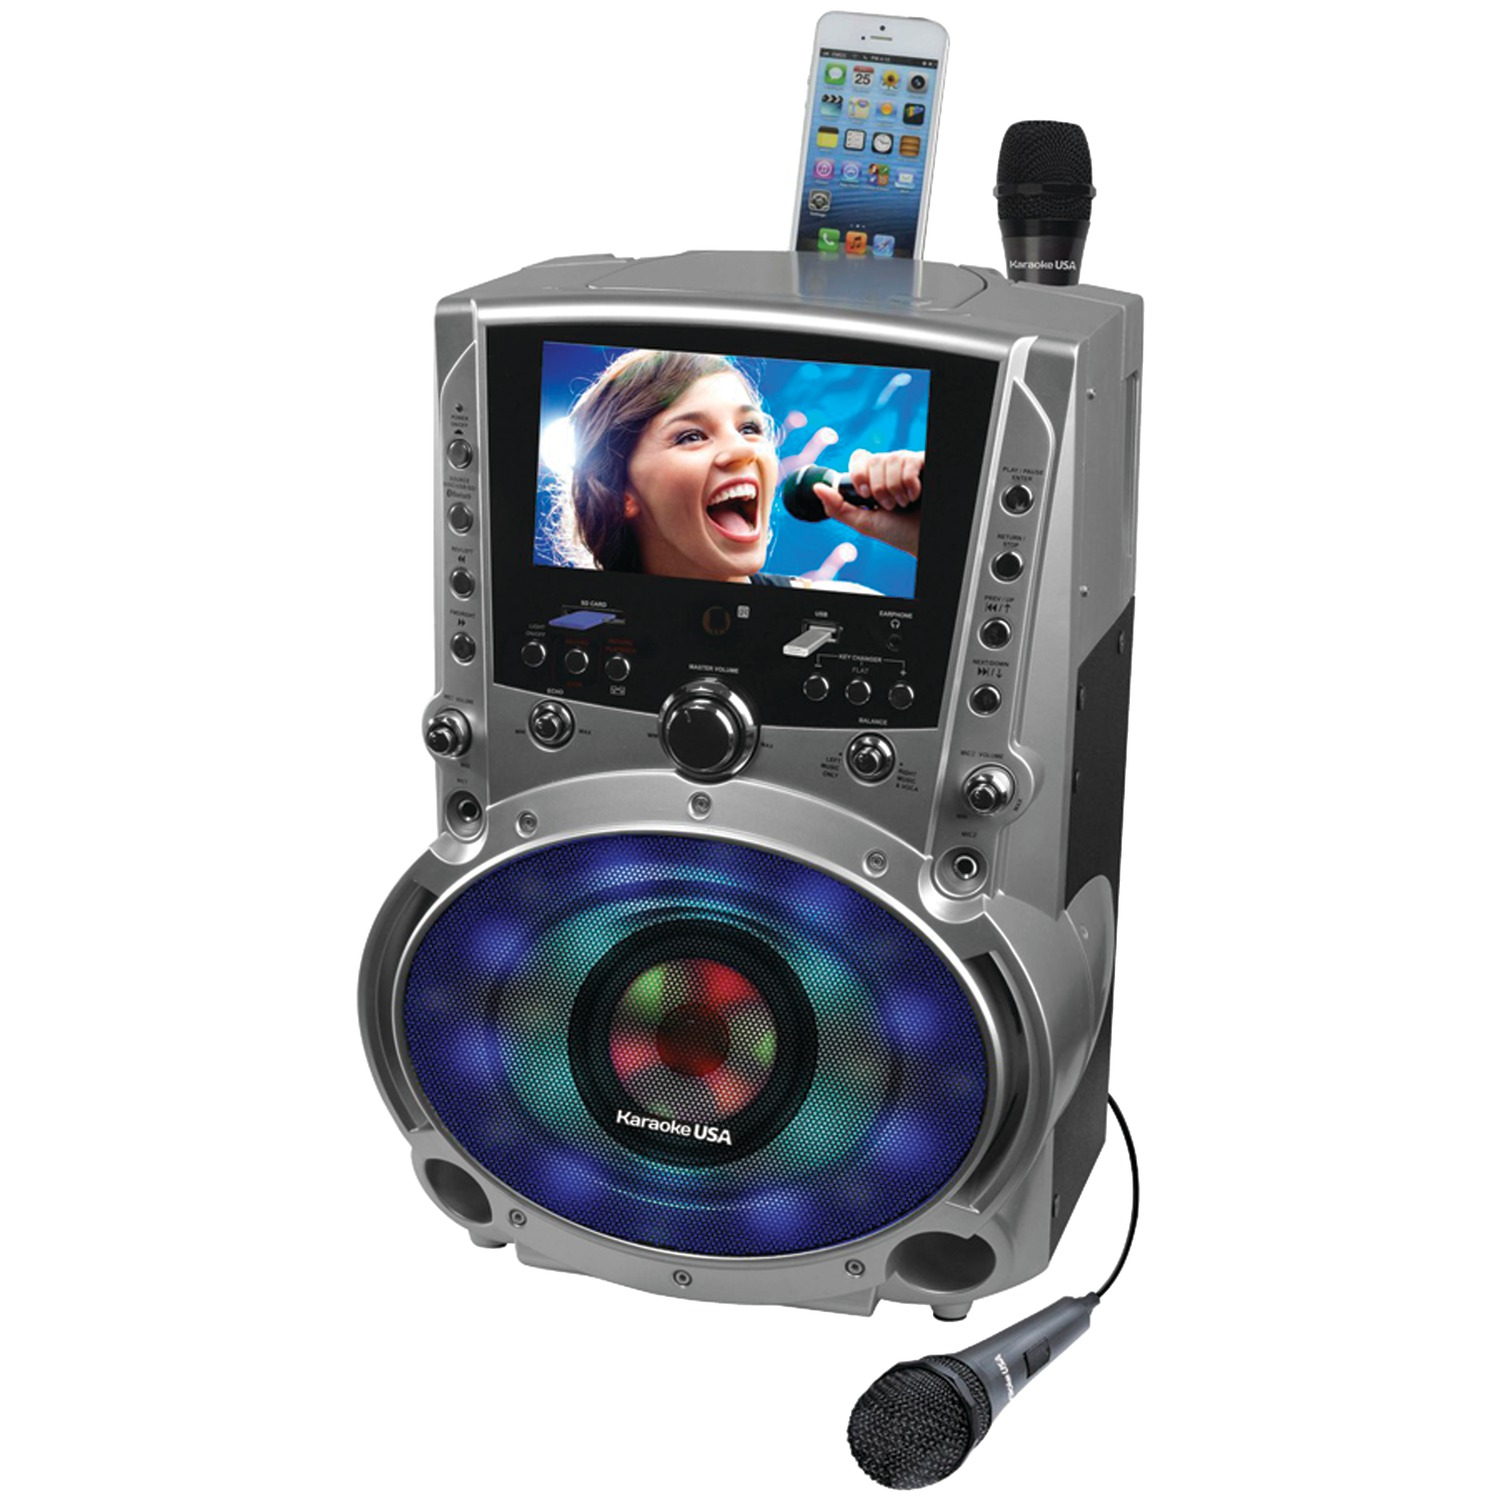 "Karaoke USA GF758 Complete Bluetooth Karaoke System with LED Sync Lights- 50 Watt Power Output includes 2 Microphones, Remote Control, 7"" Color Screen, Record Function. Plays DVD/CDG/MP3G / USB /SD"